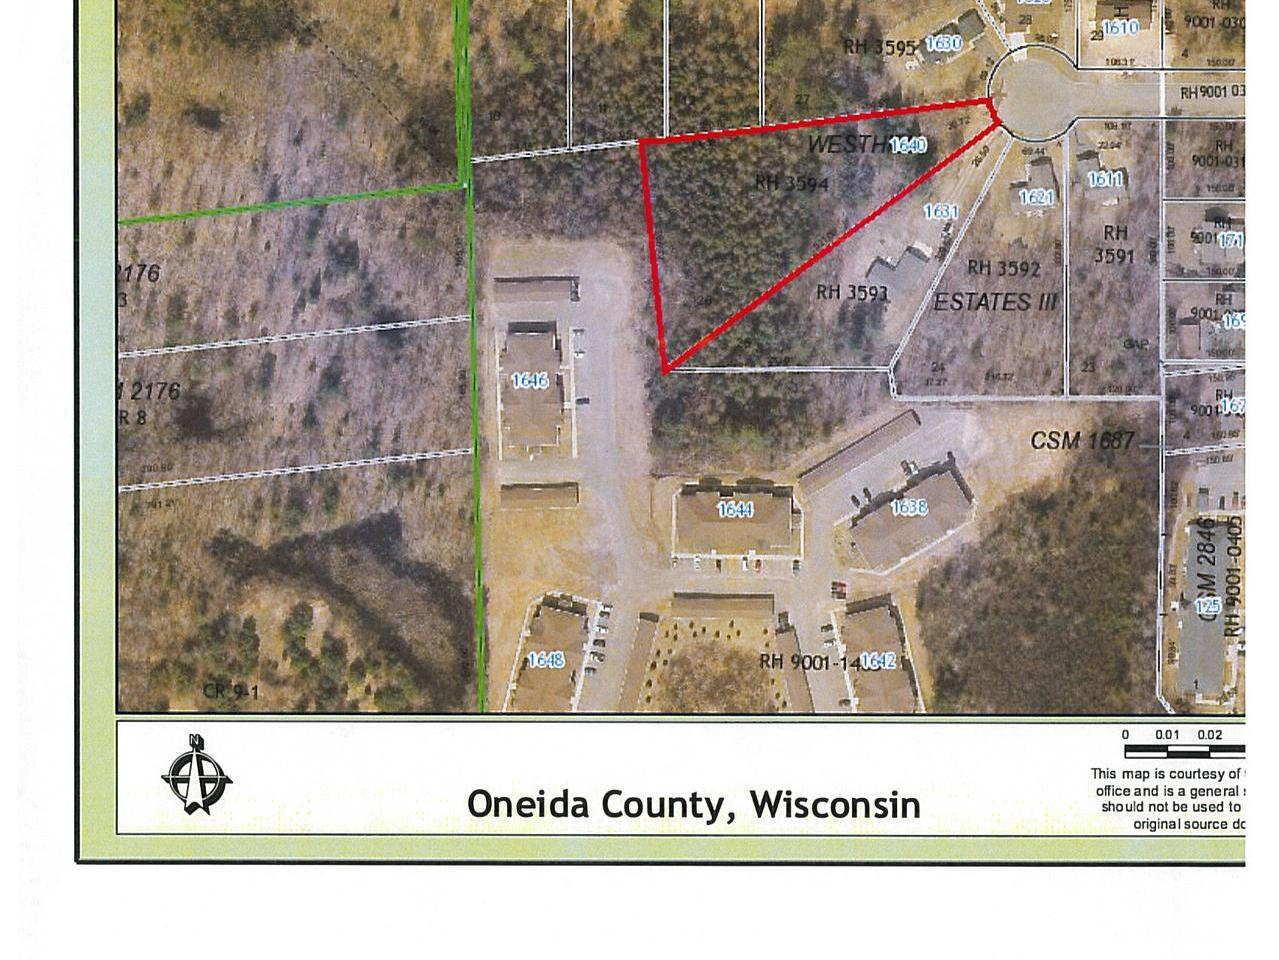 Looking to build? This ready to build 1.6 acre, single family lot sits at the end of a quiet cul de sac. The wooded lot offers a country feel with city conveniences such as city sewer/water, proximity to shopping, medical facilities, Located on Rhinelander's west side with easy access to Hwy 47/ 8.